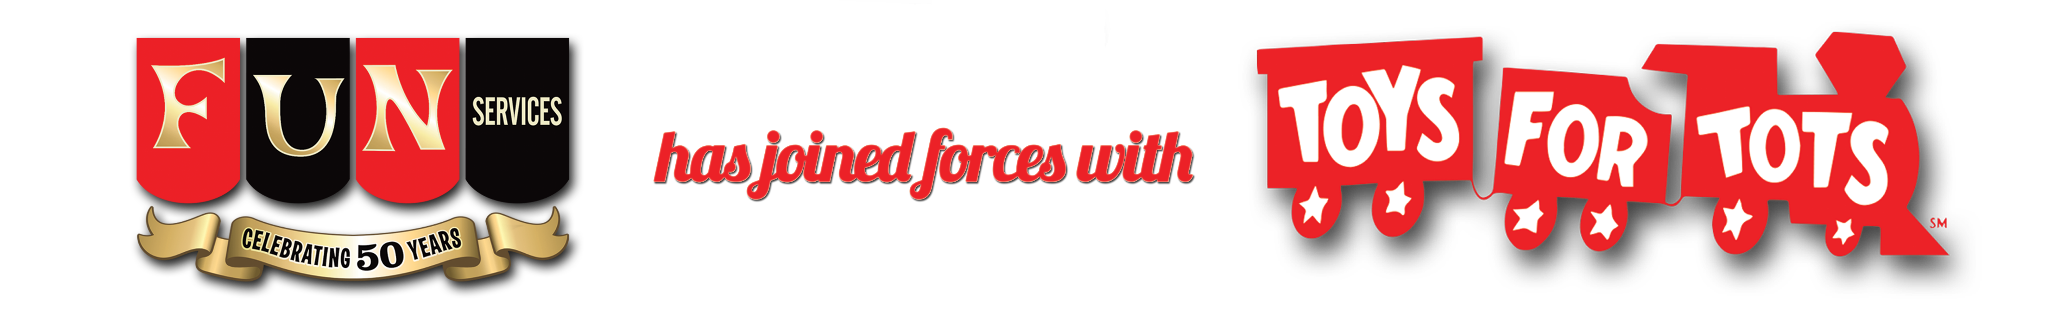 Fun Services joins forces with Toys for Tots